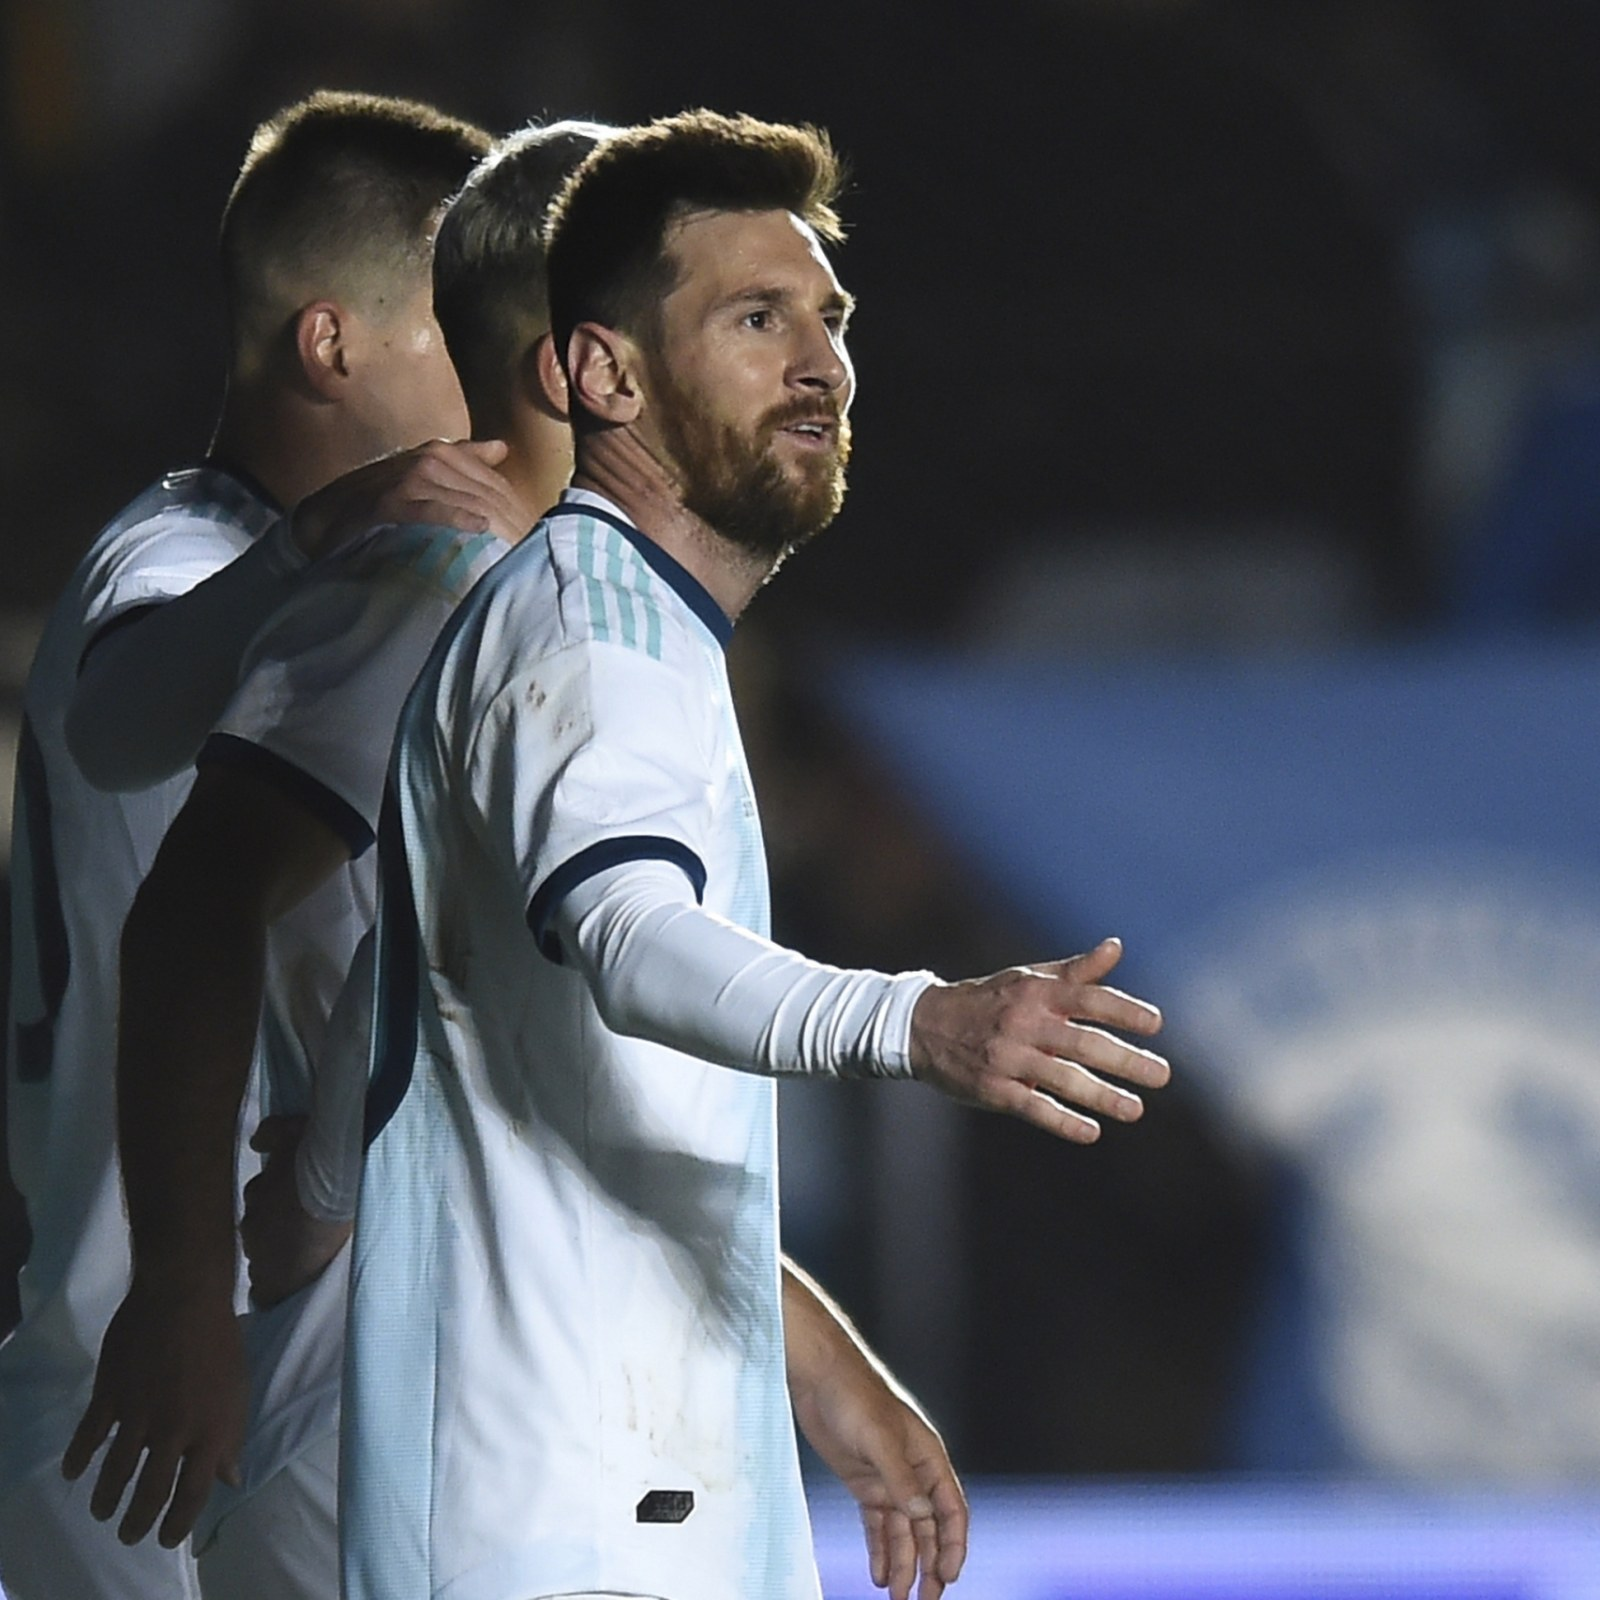 Copa America 2019: Expert Picks and Predictions, Schedule and Odds